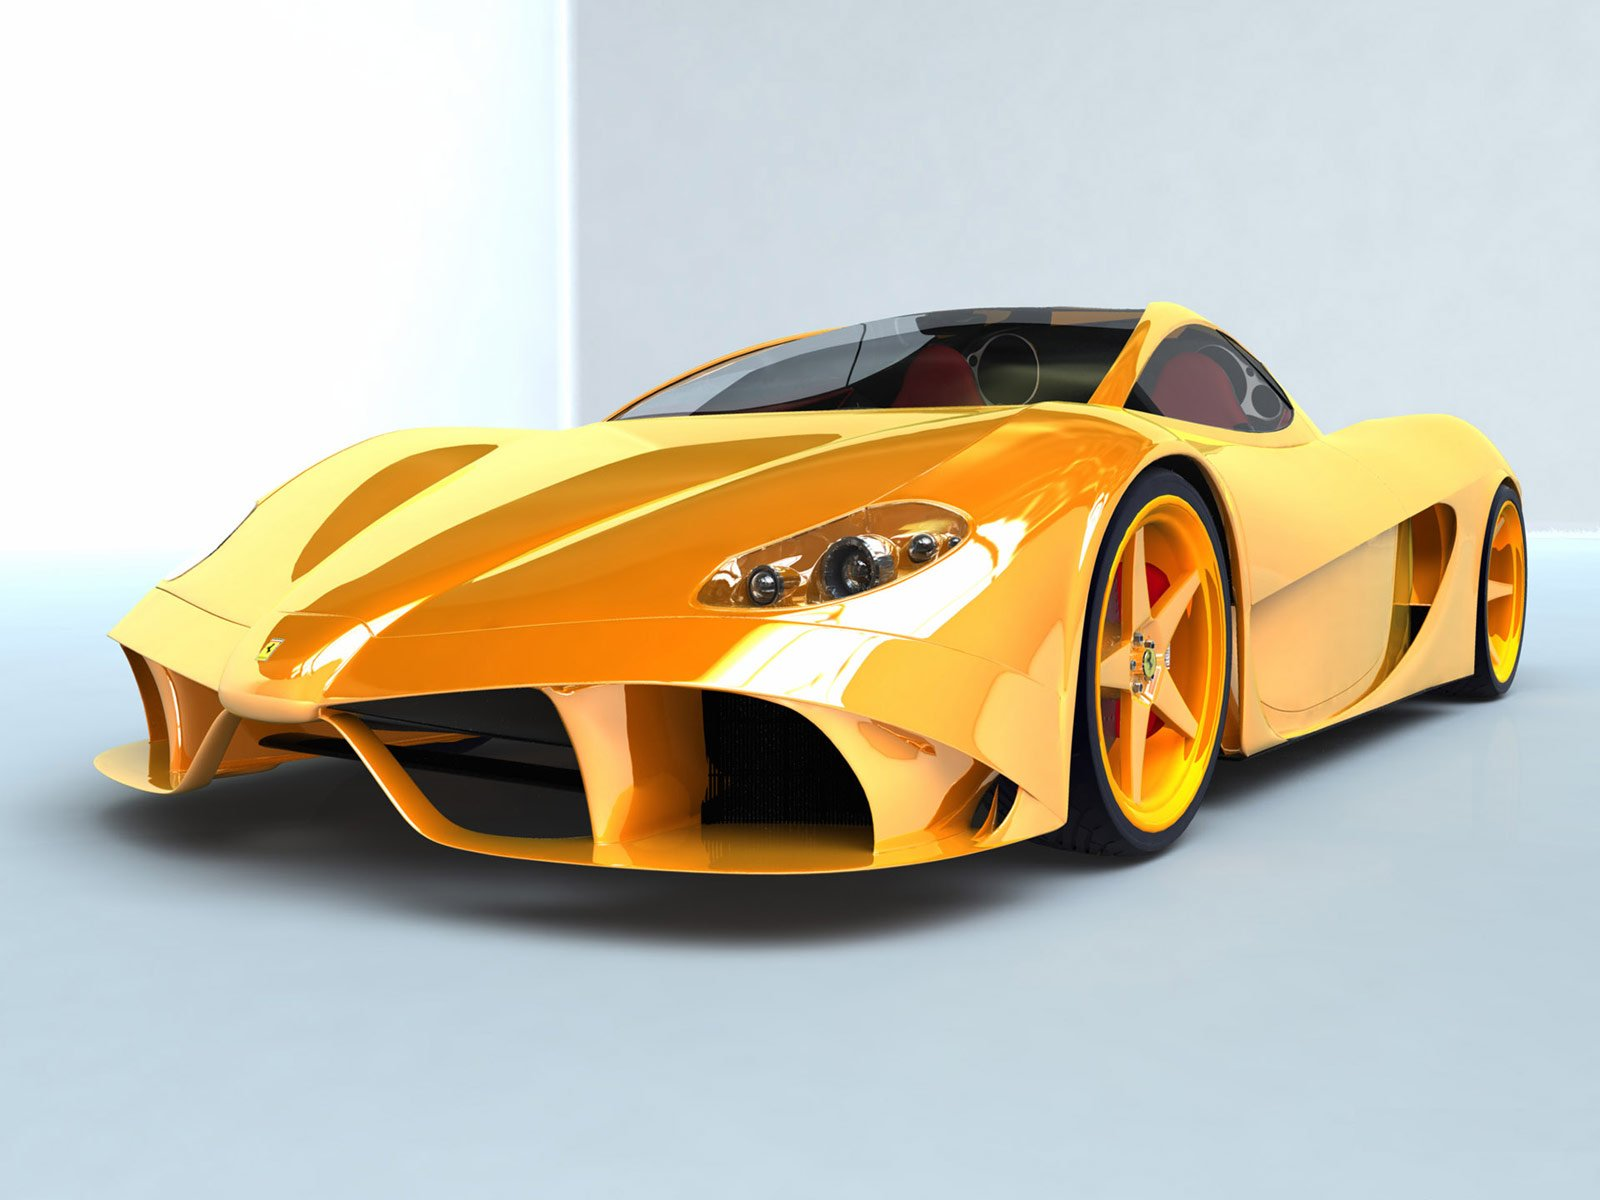 Sports Cars Pictures Wallpapers: Modified Sports Cars Wallpapers